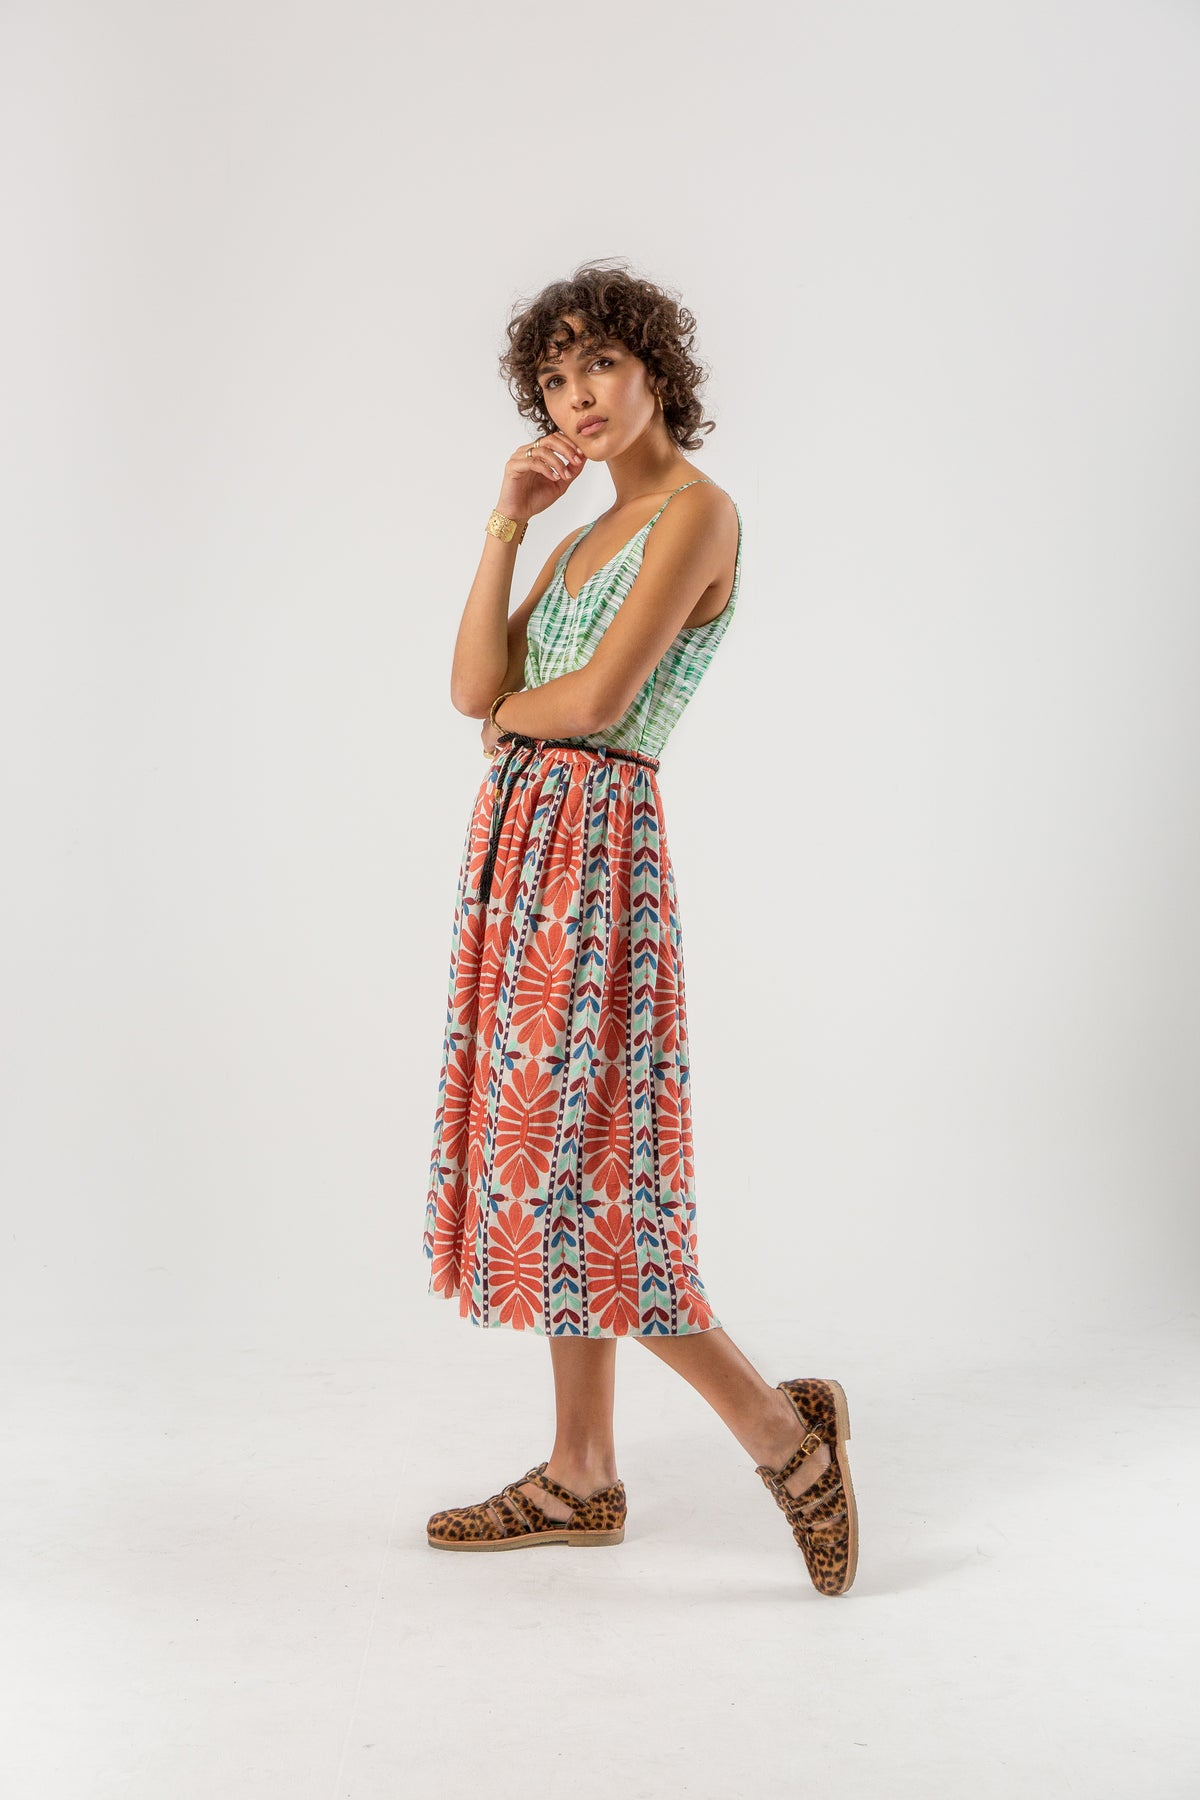 Orso dress in mexican embroidery